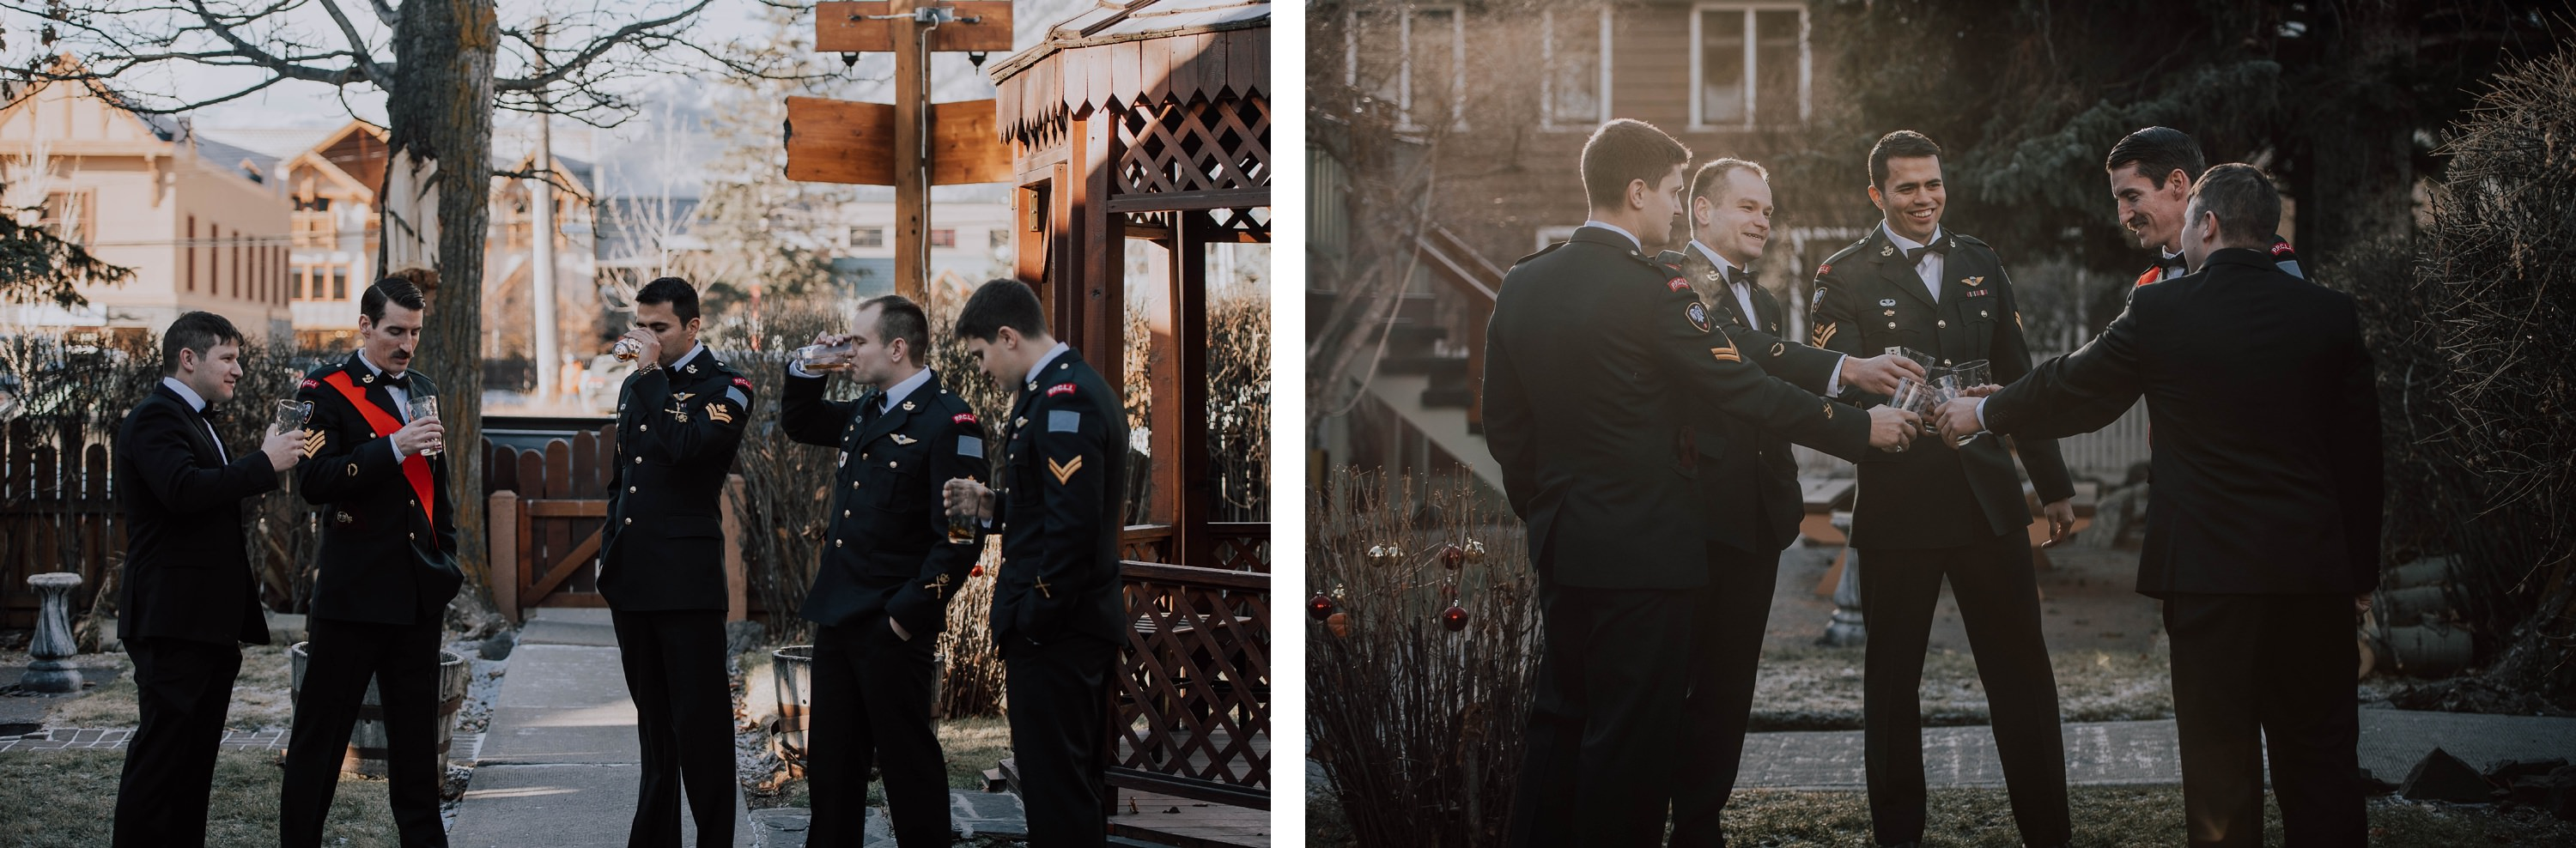 Groom and groomsmen getting ready for wedding in Canadian army formals